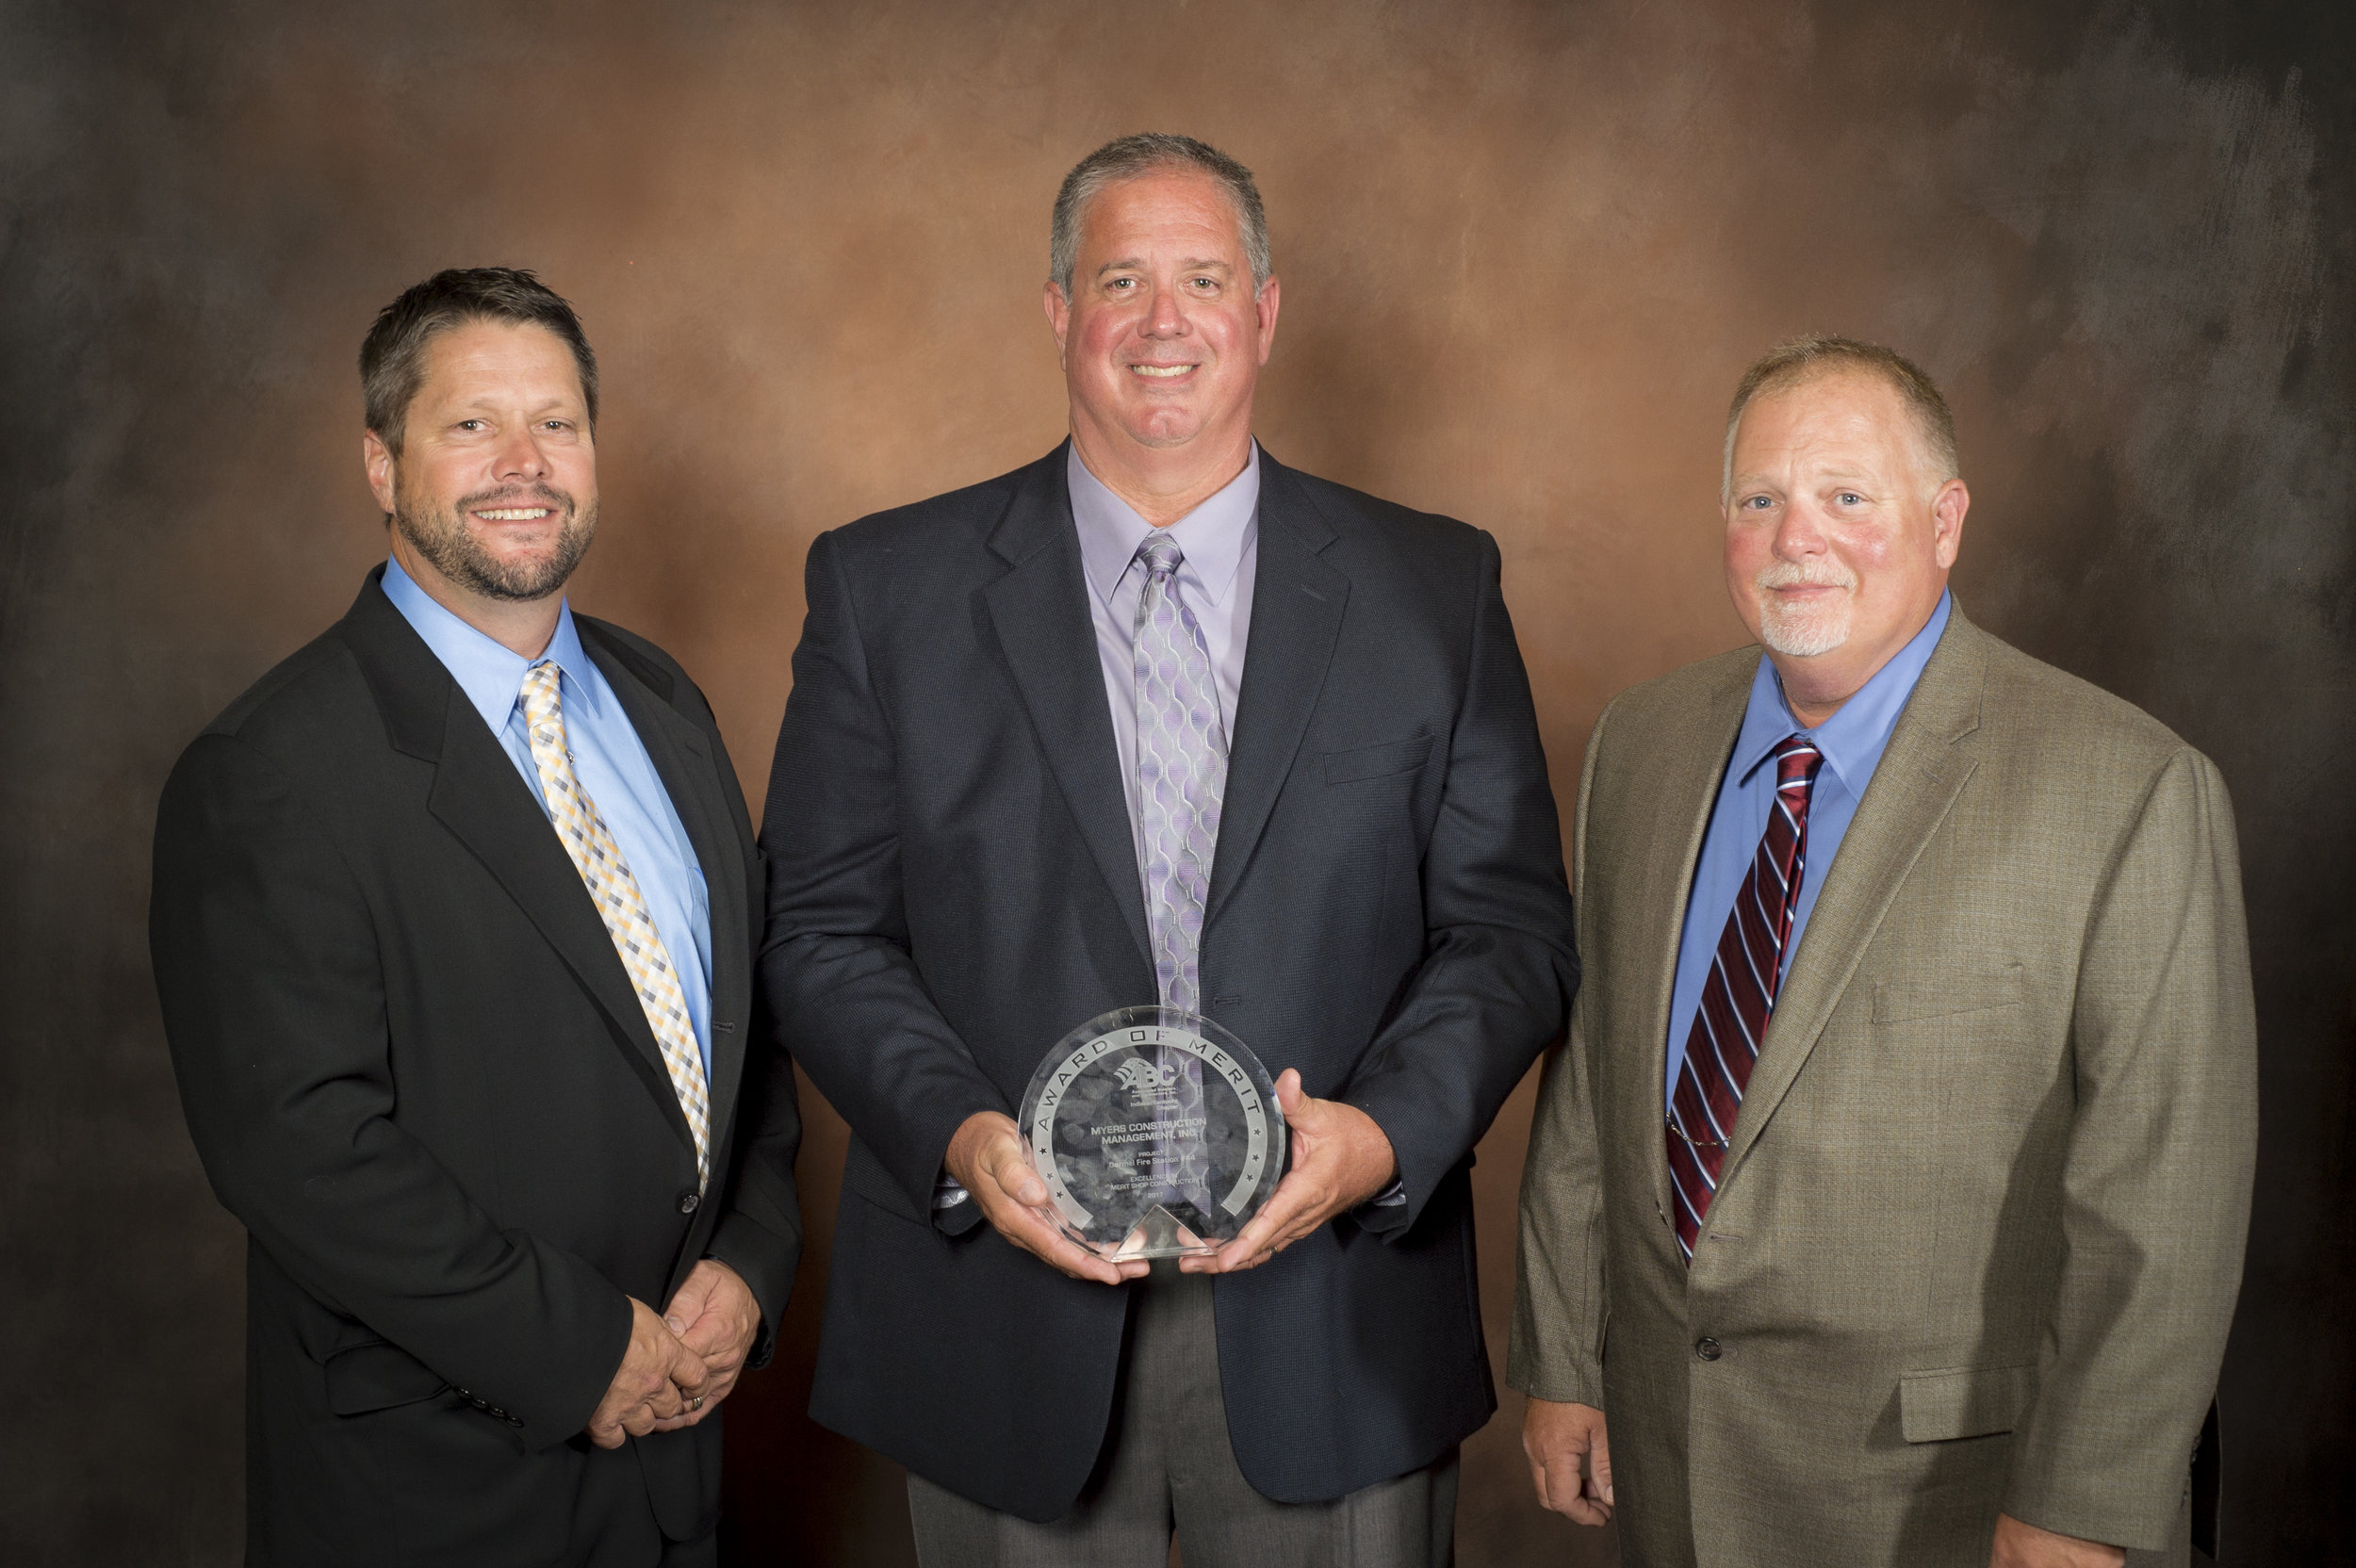 Award of Merit - Carmel Fire Station #44 - Institutional $3-10M. Left to right: Steve Ferguson (Project Manager), Don Myers (MCMI Owner), and Kent Fielden (Project Superintendent).